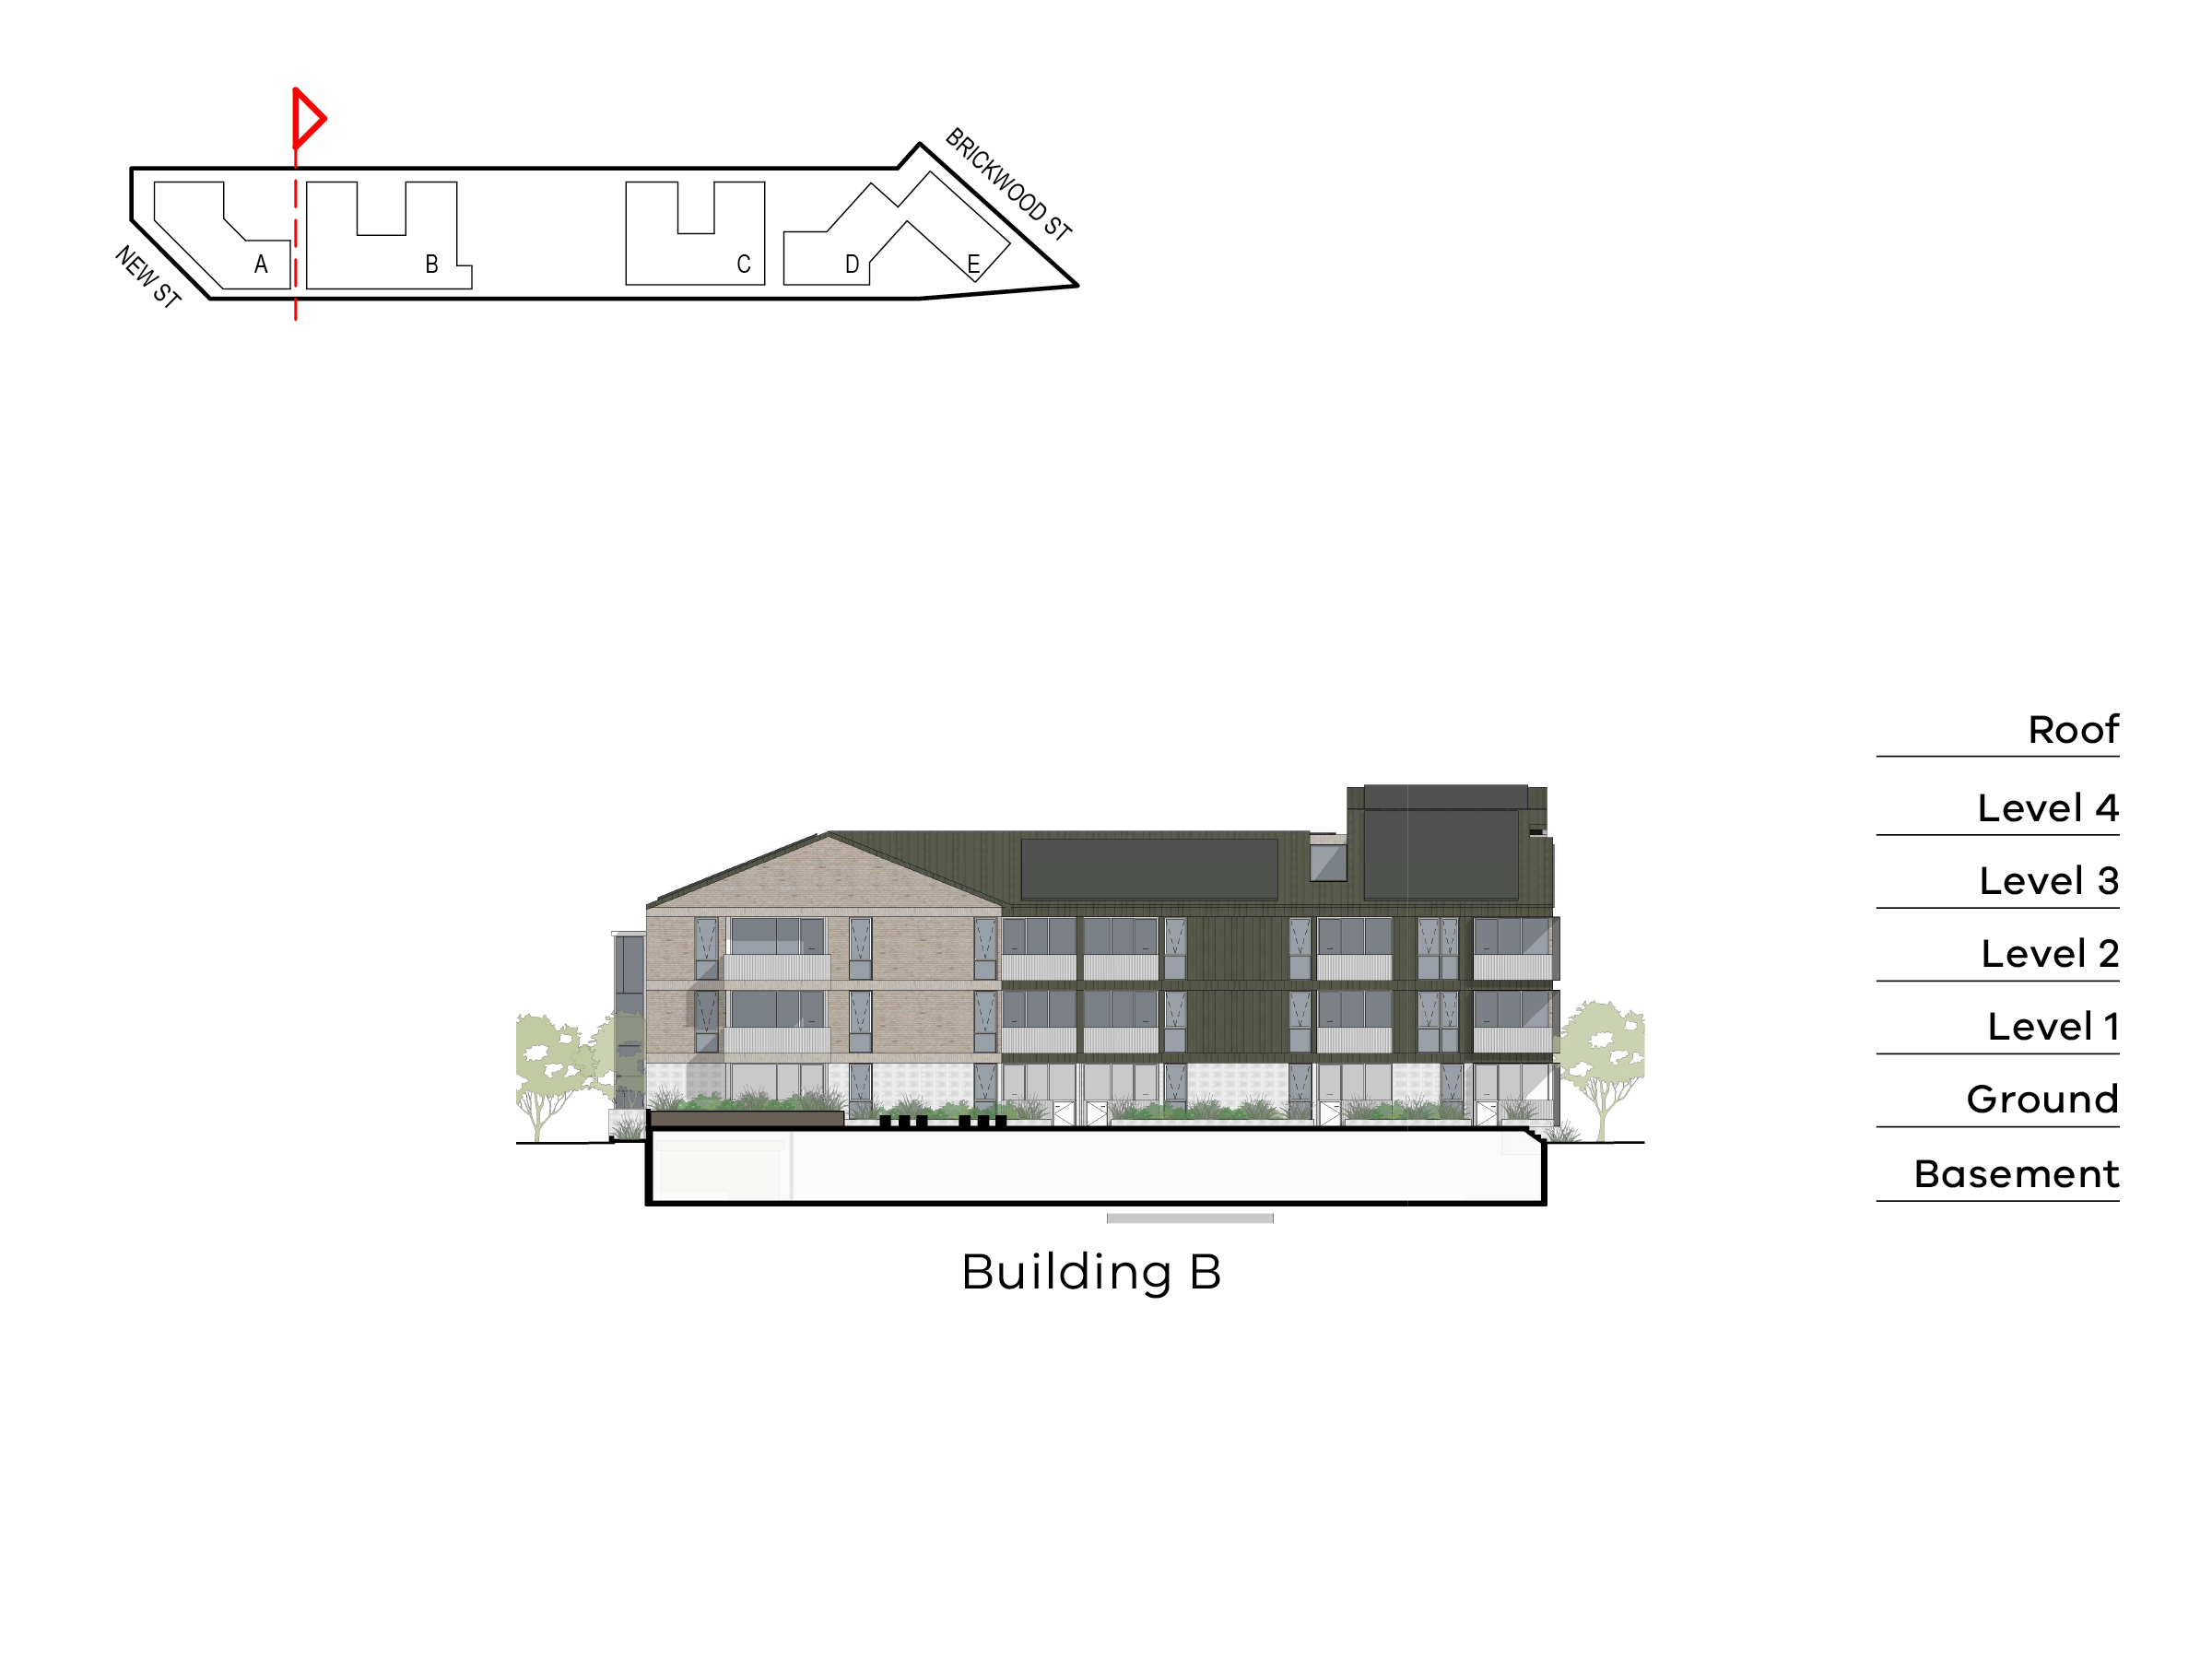 Diagram showing the height of building B as seen from building A towards Brickwood Street. Building B has a basement. ground level, floor 1-2 and a roof.